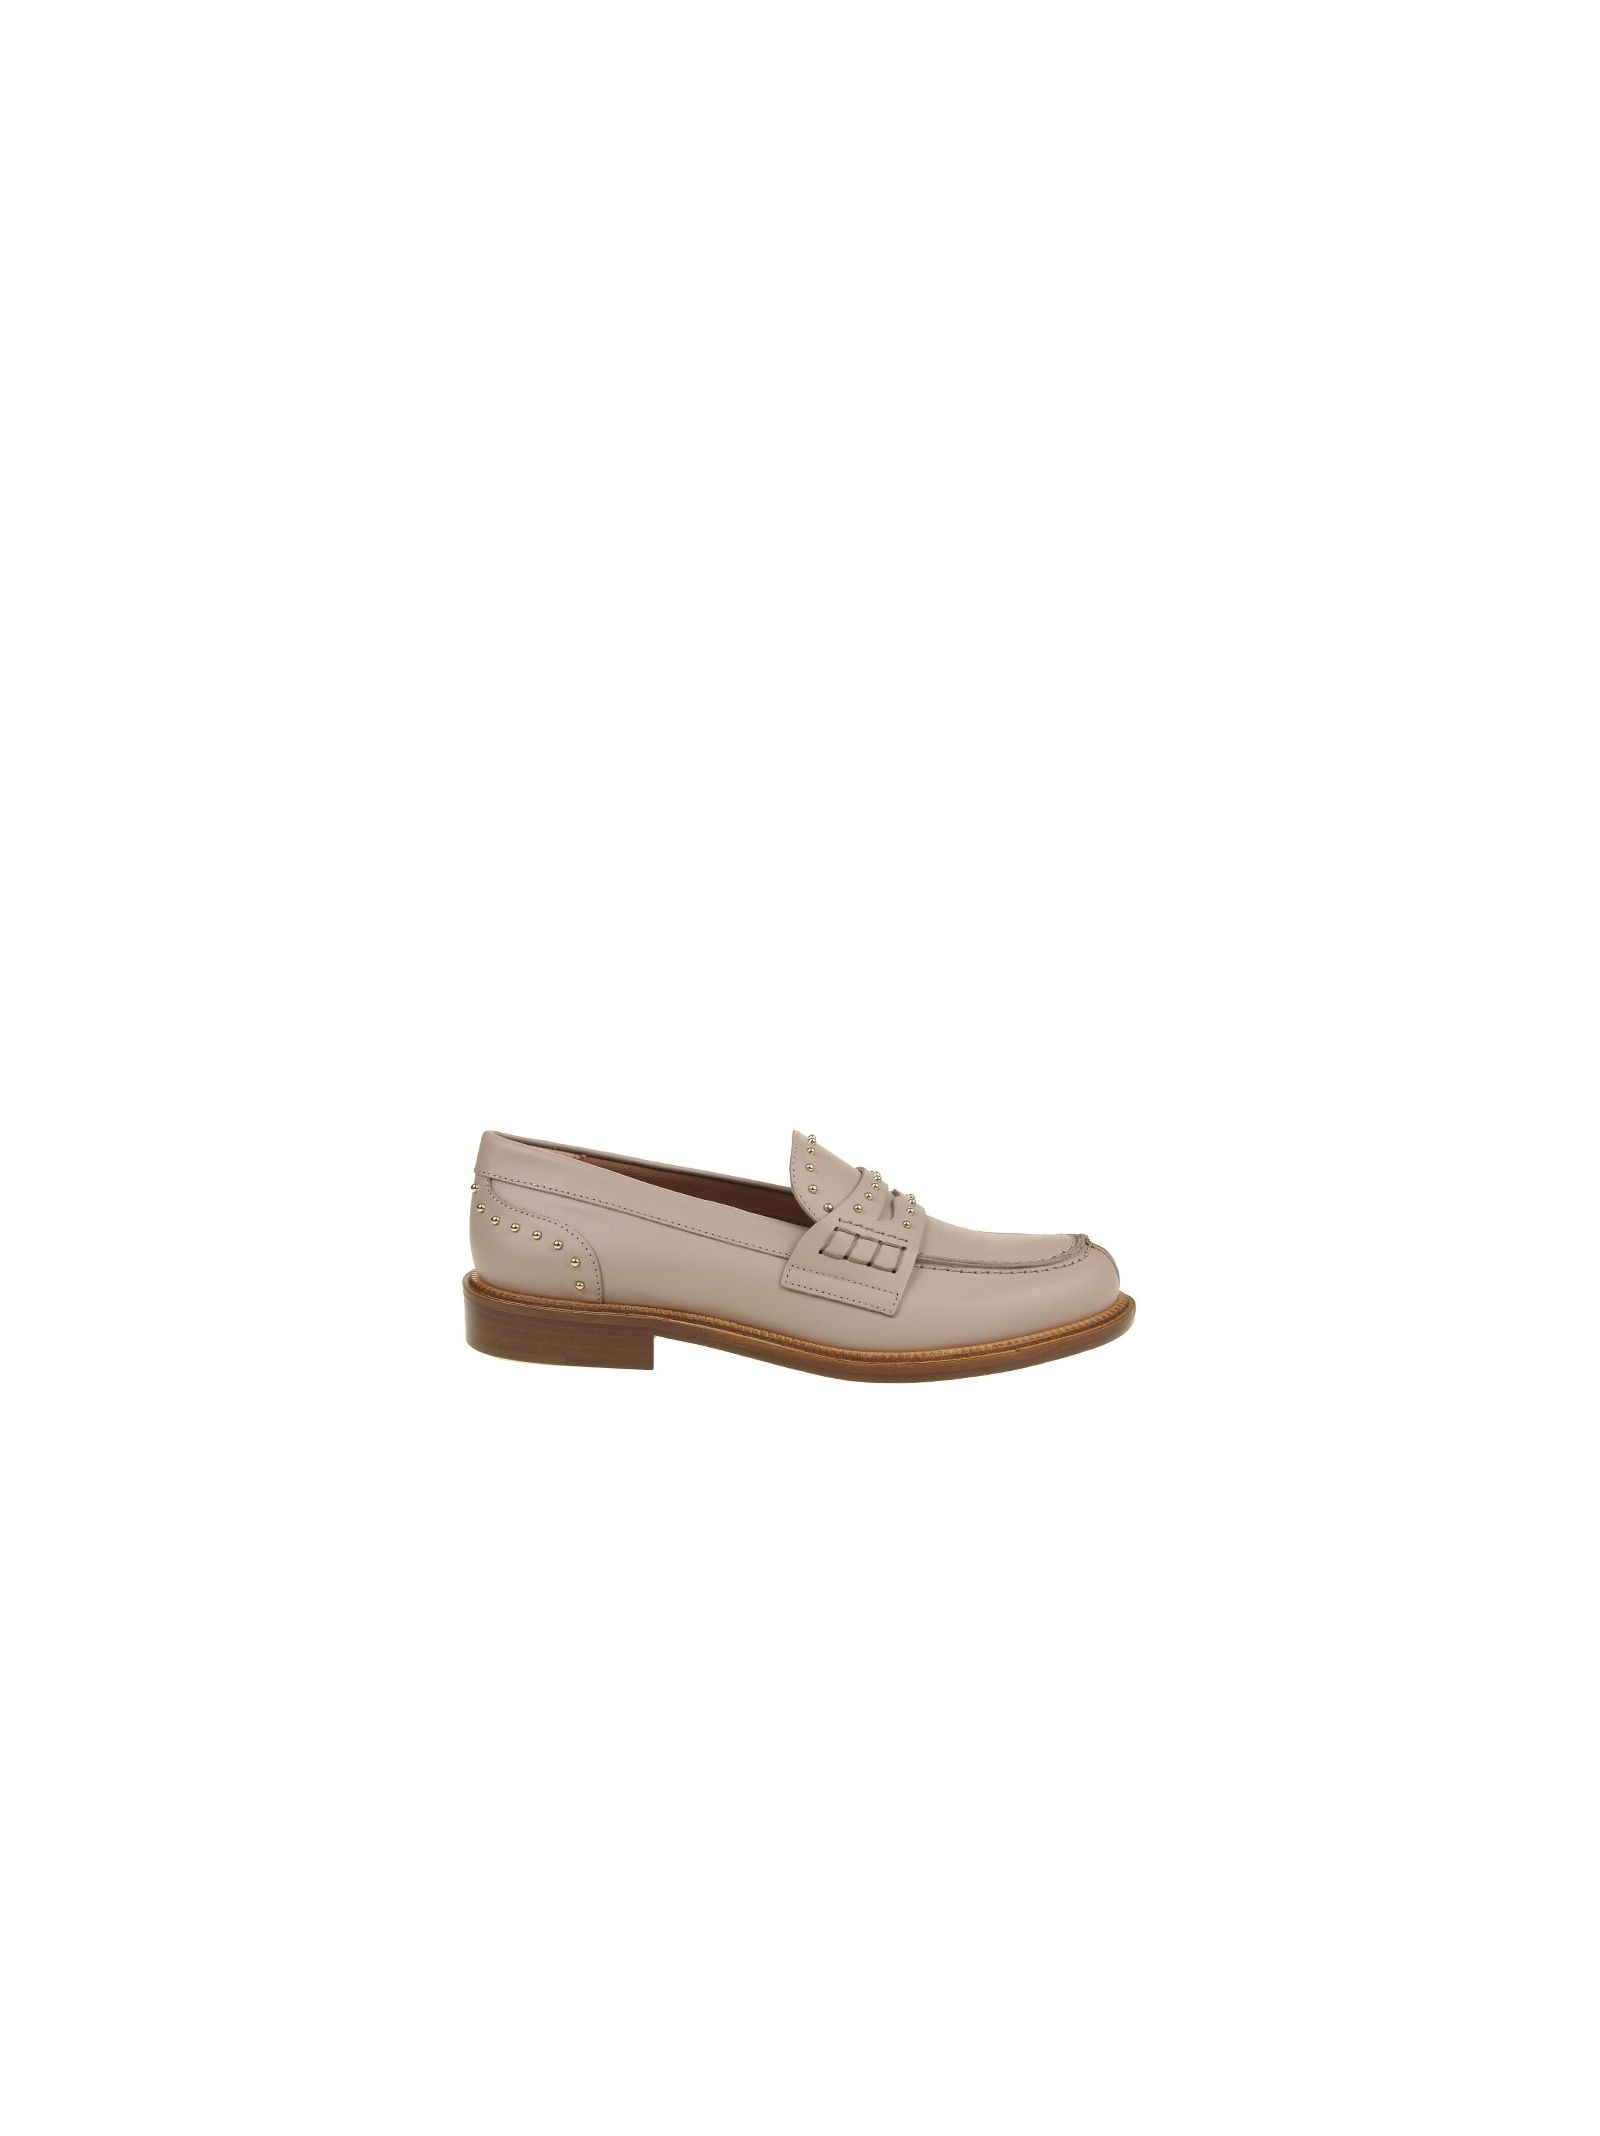 red valentino female red valentinoloafer in pink leather